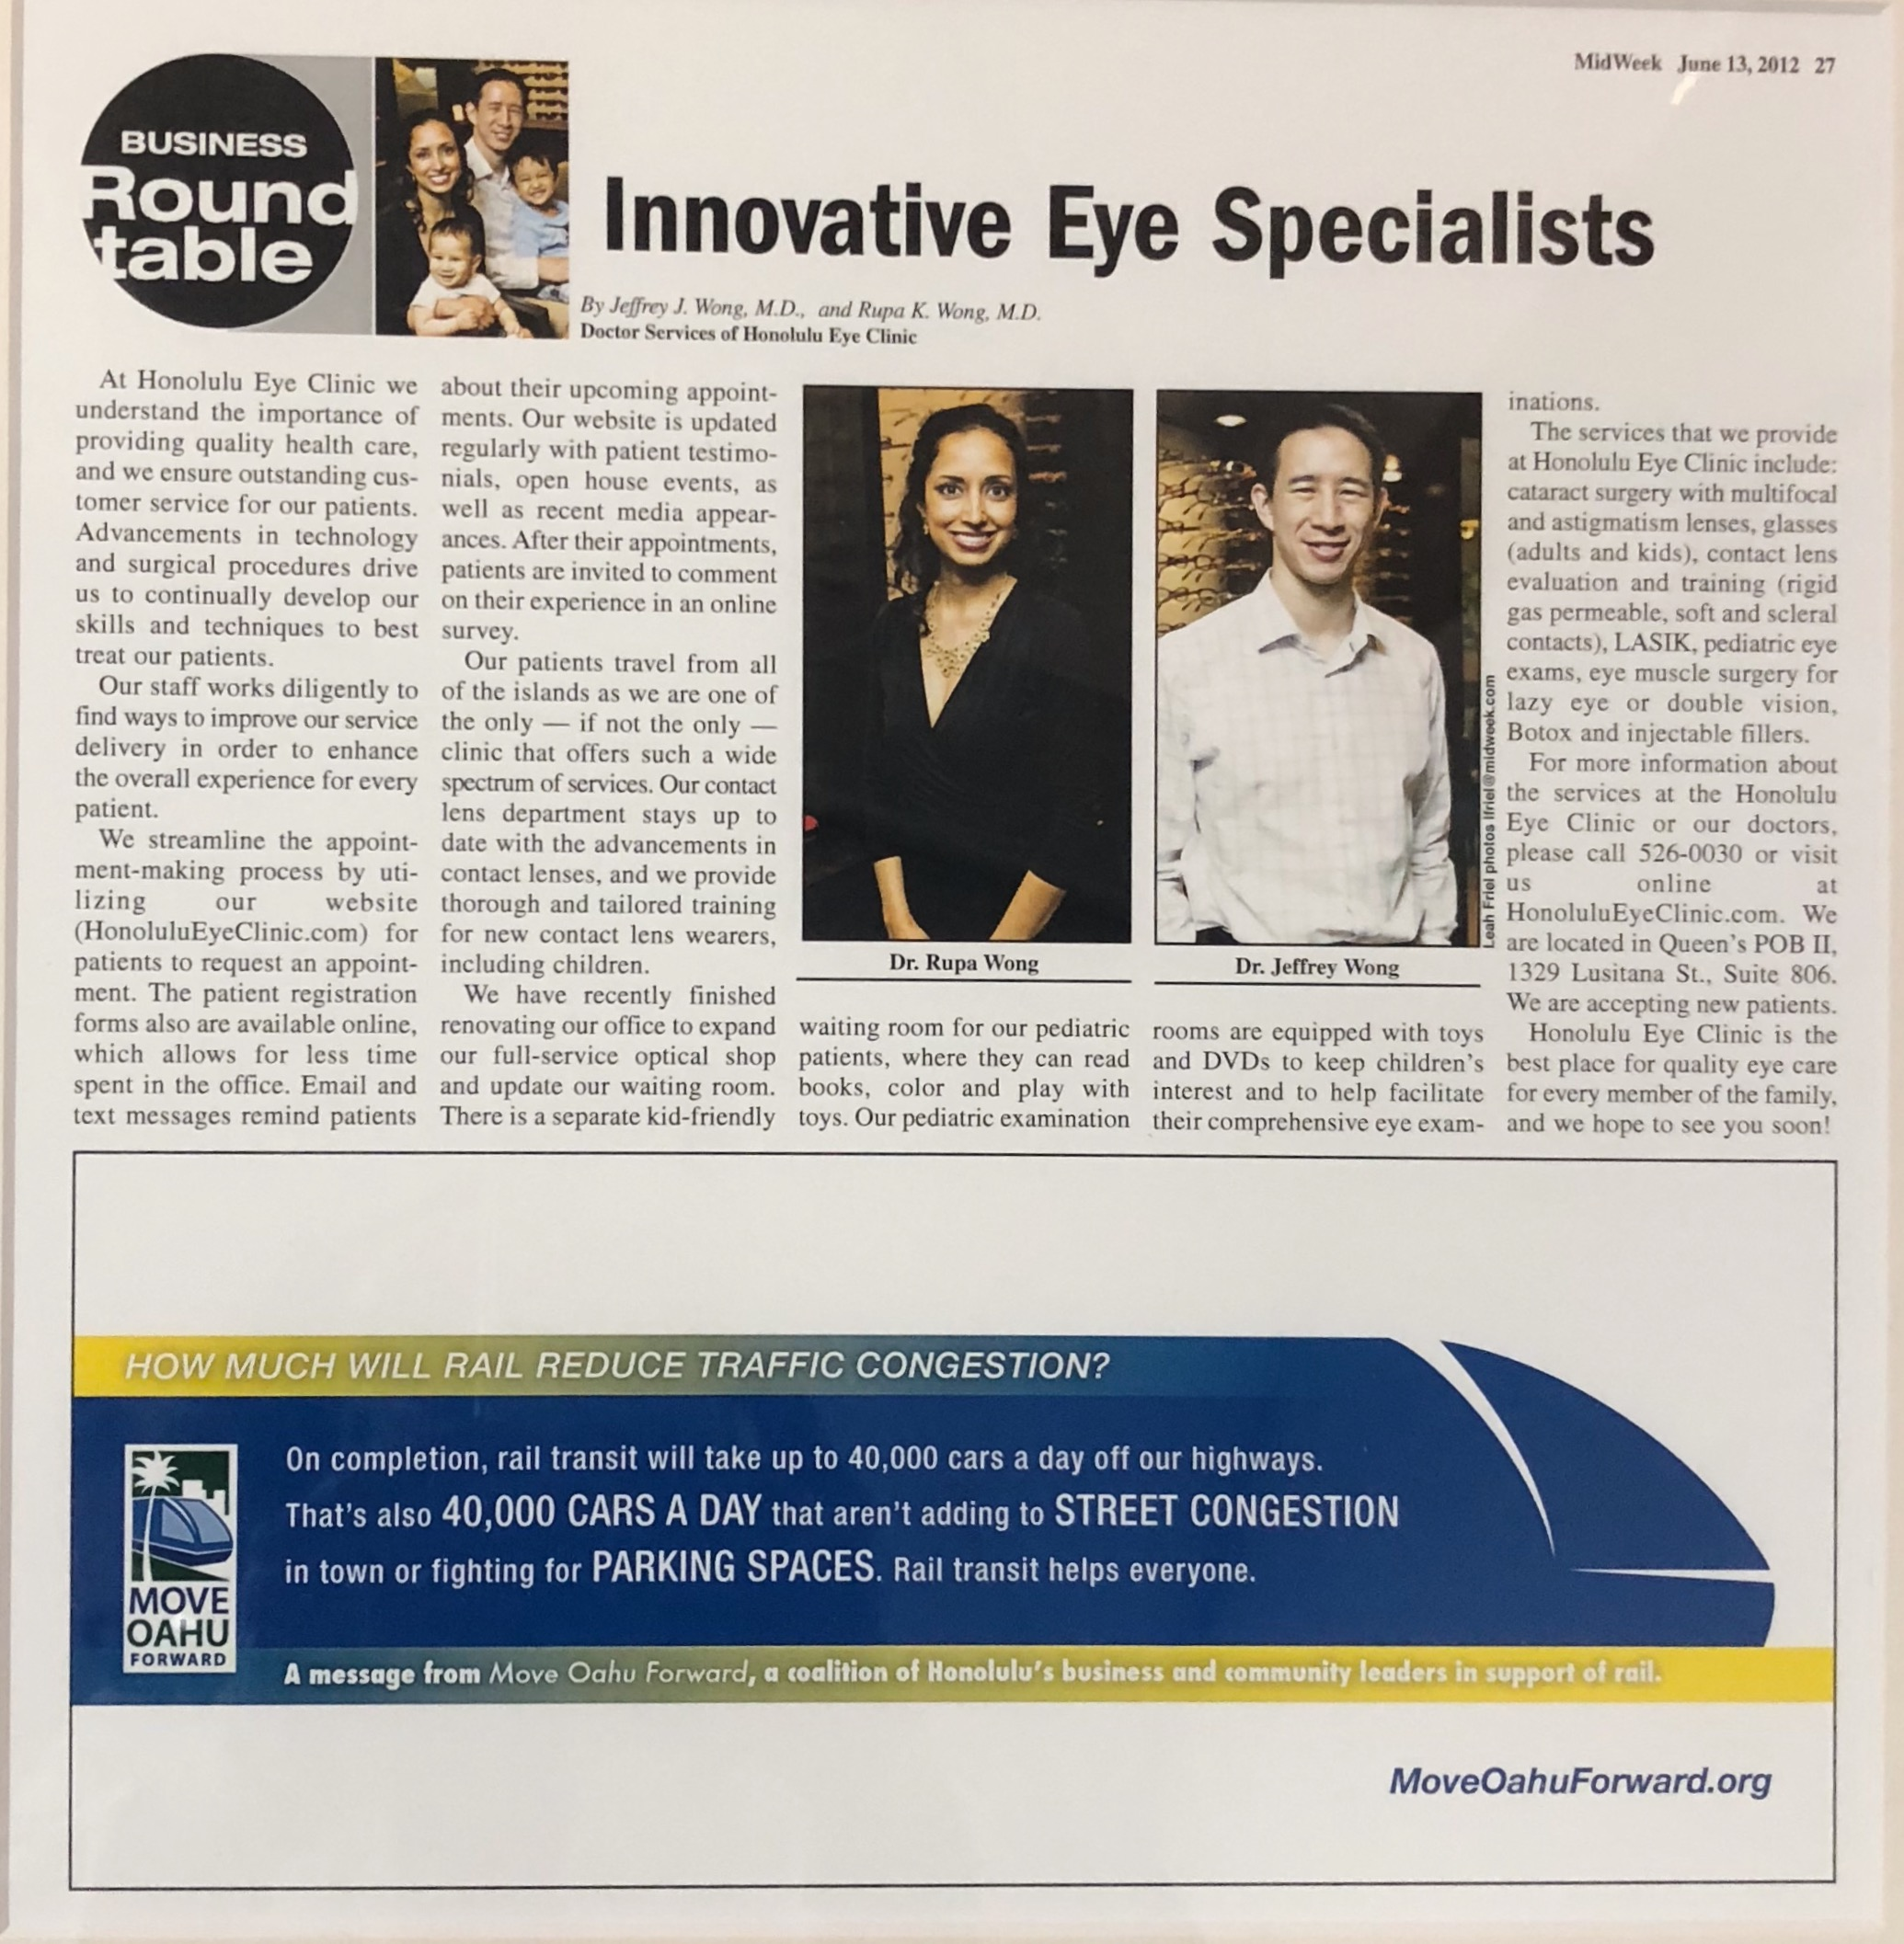 Innovative Eye Specialist article